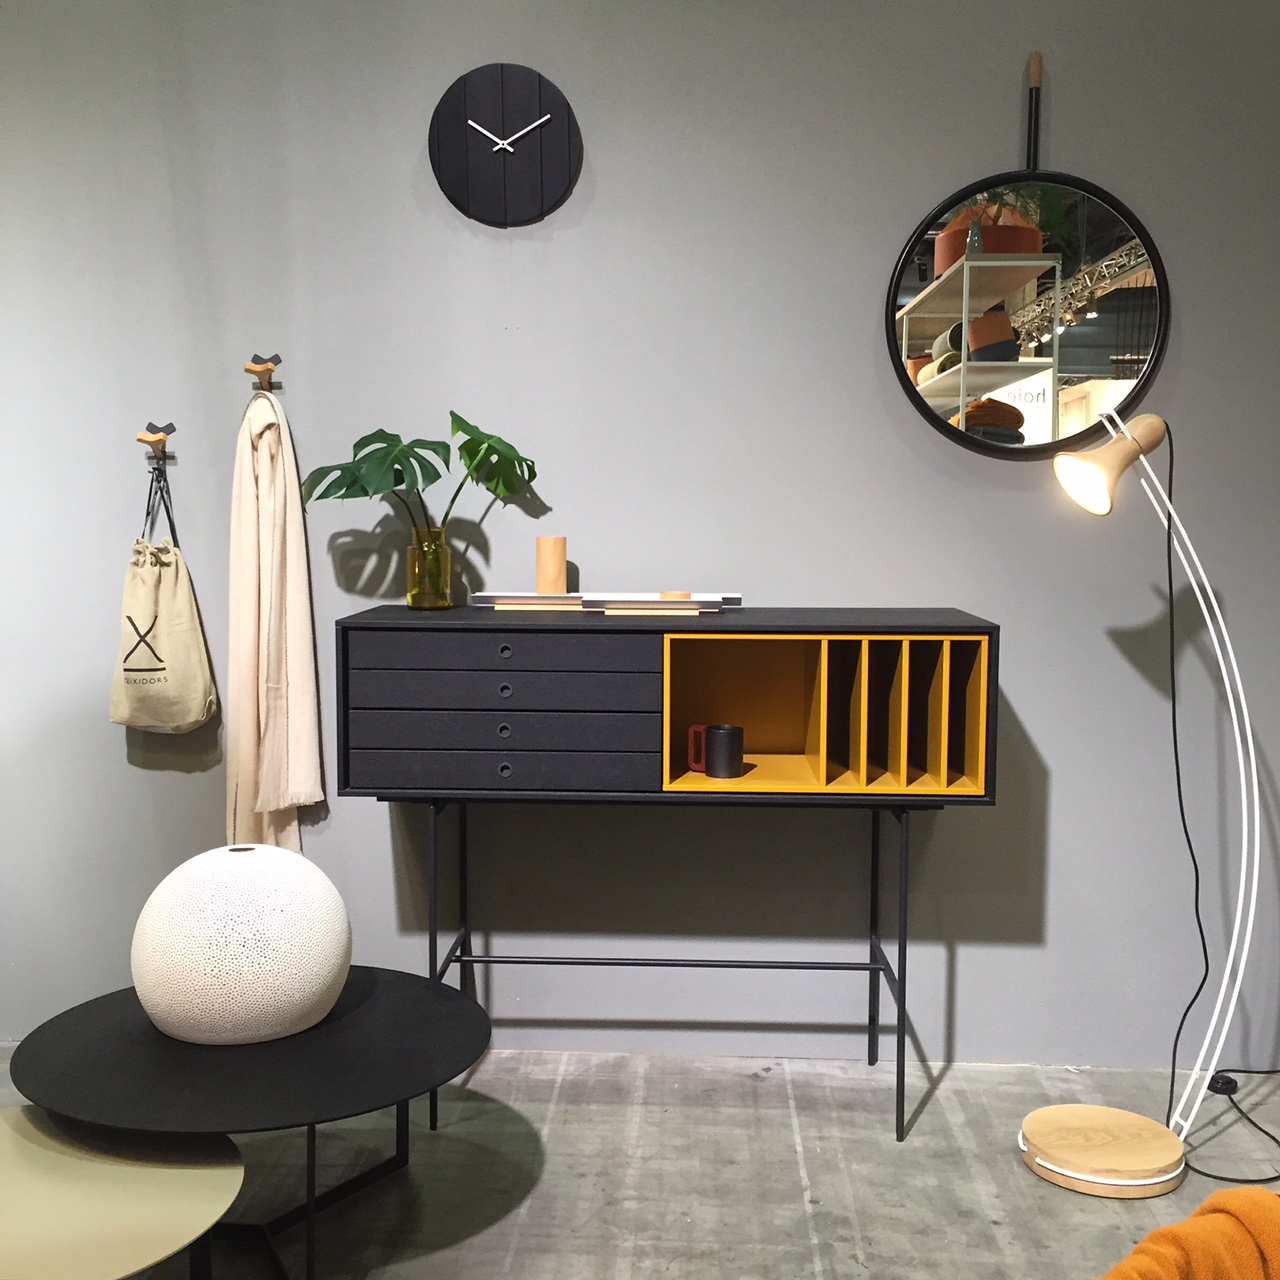 Noes at Oslo Design Fair